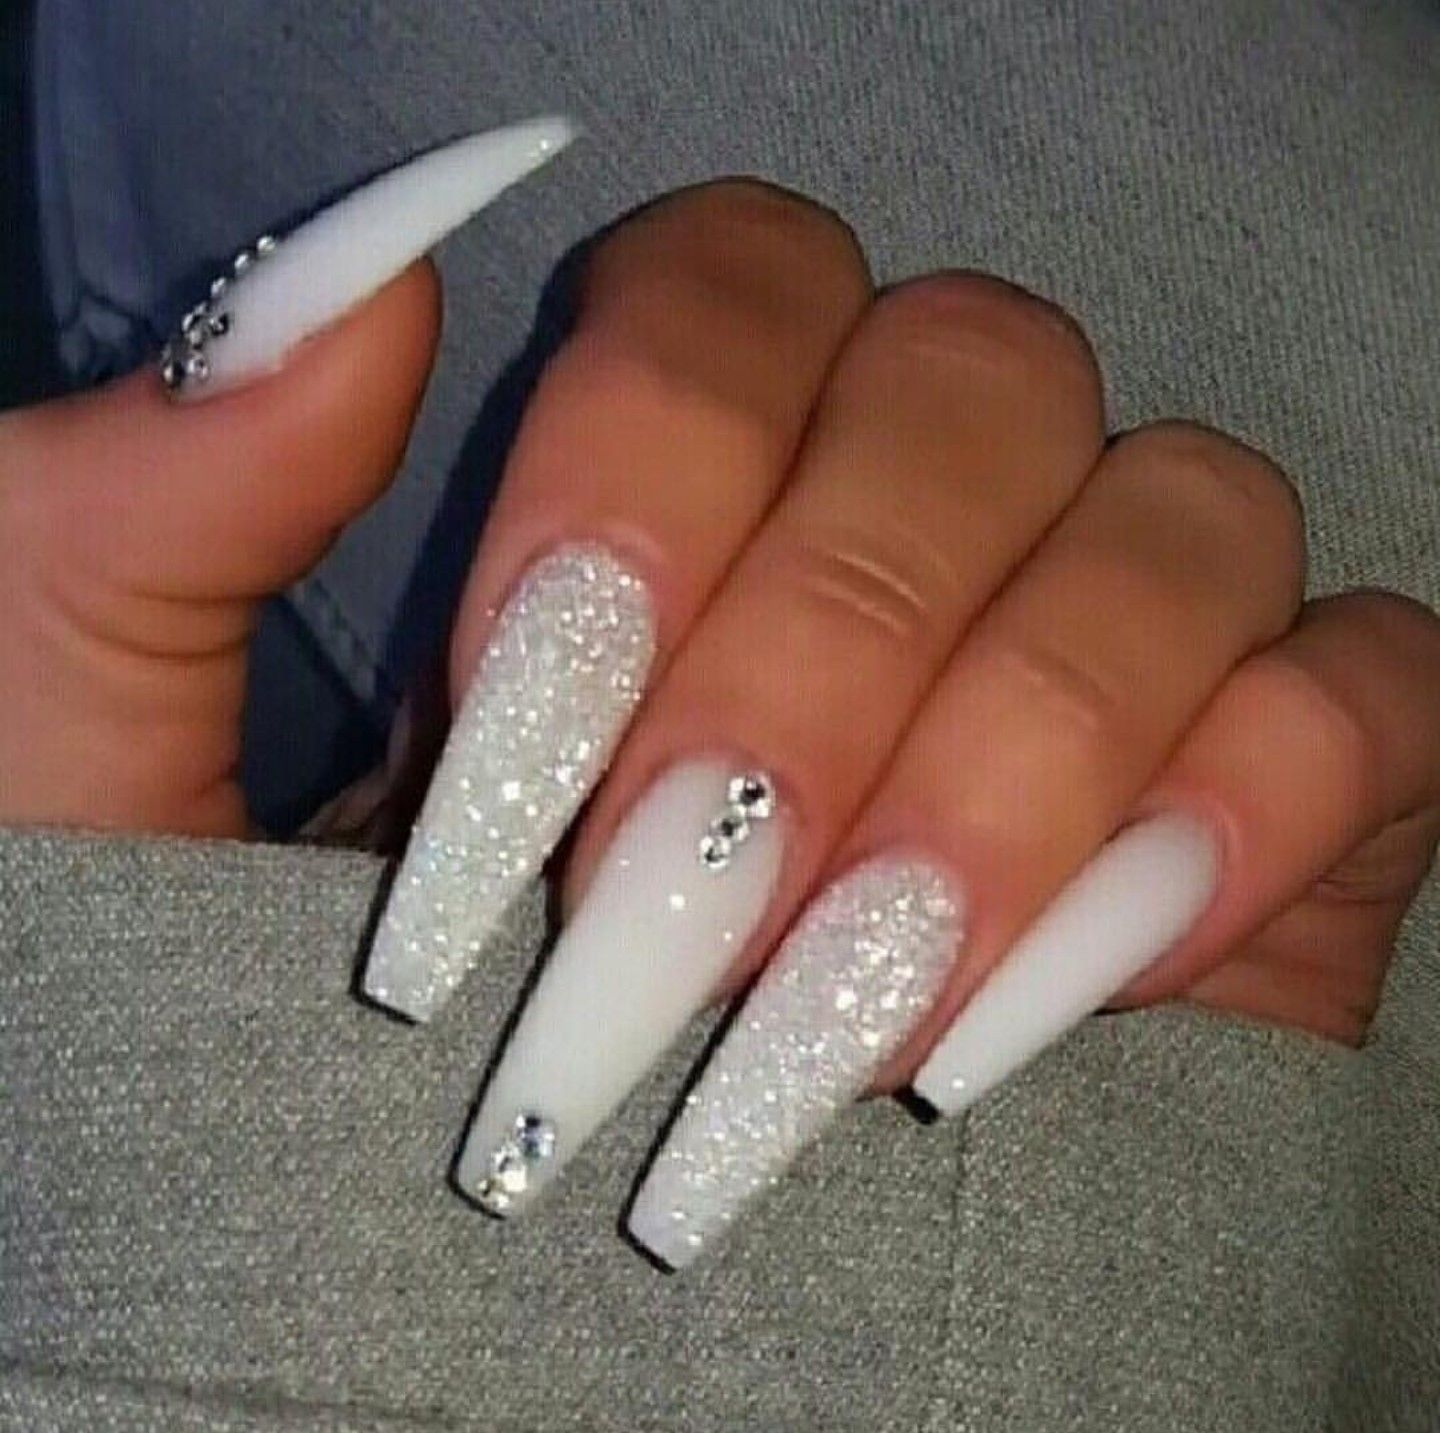 Pin By Thenaturalfeedzzz On Hair And Nail Suggestions Best Acrylic Nails Nails Design With Rhinestones White Acrylic Nails